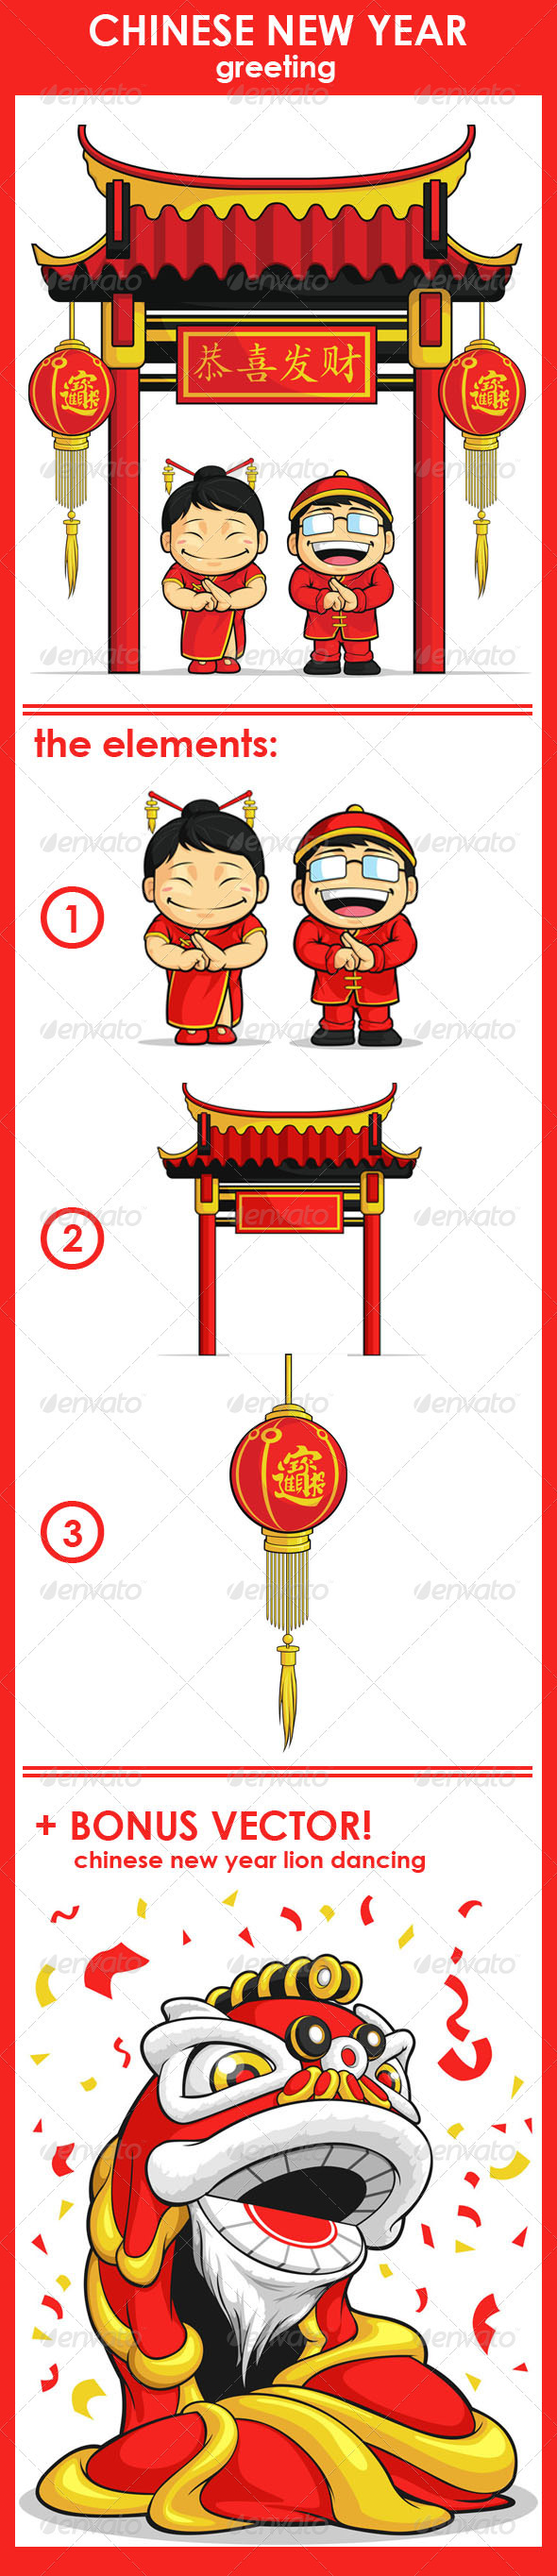 GraphicRiver Chinese New Year Greeting 3885728